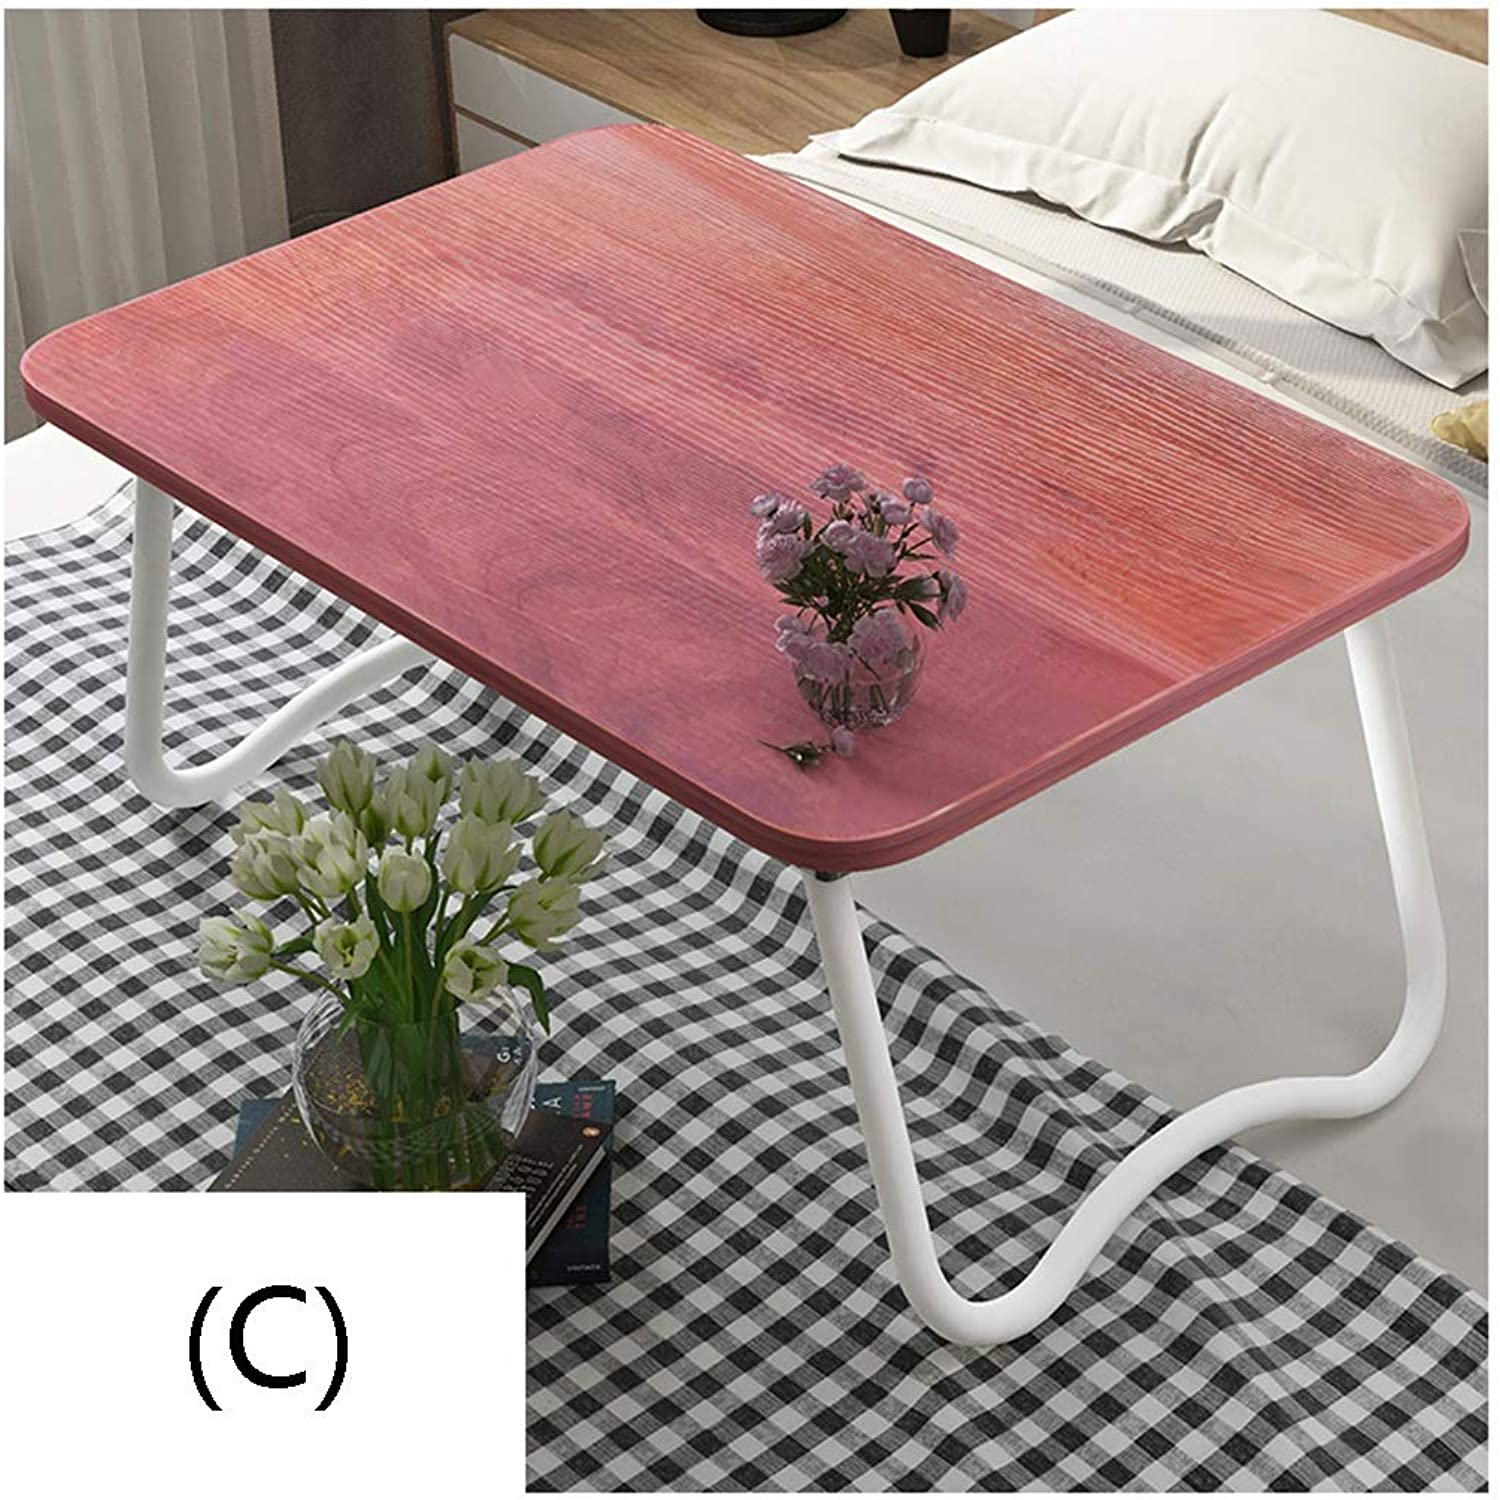 Folding Table Bed Small Table Foldable Laptop Lazy Table Student Bedroom Study Desk Dormitory Artifact Essential Artifact Easy to Use (color   C)